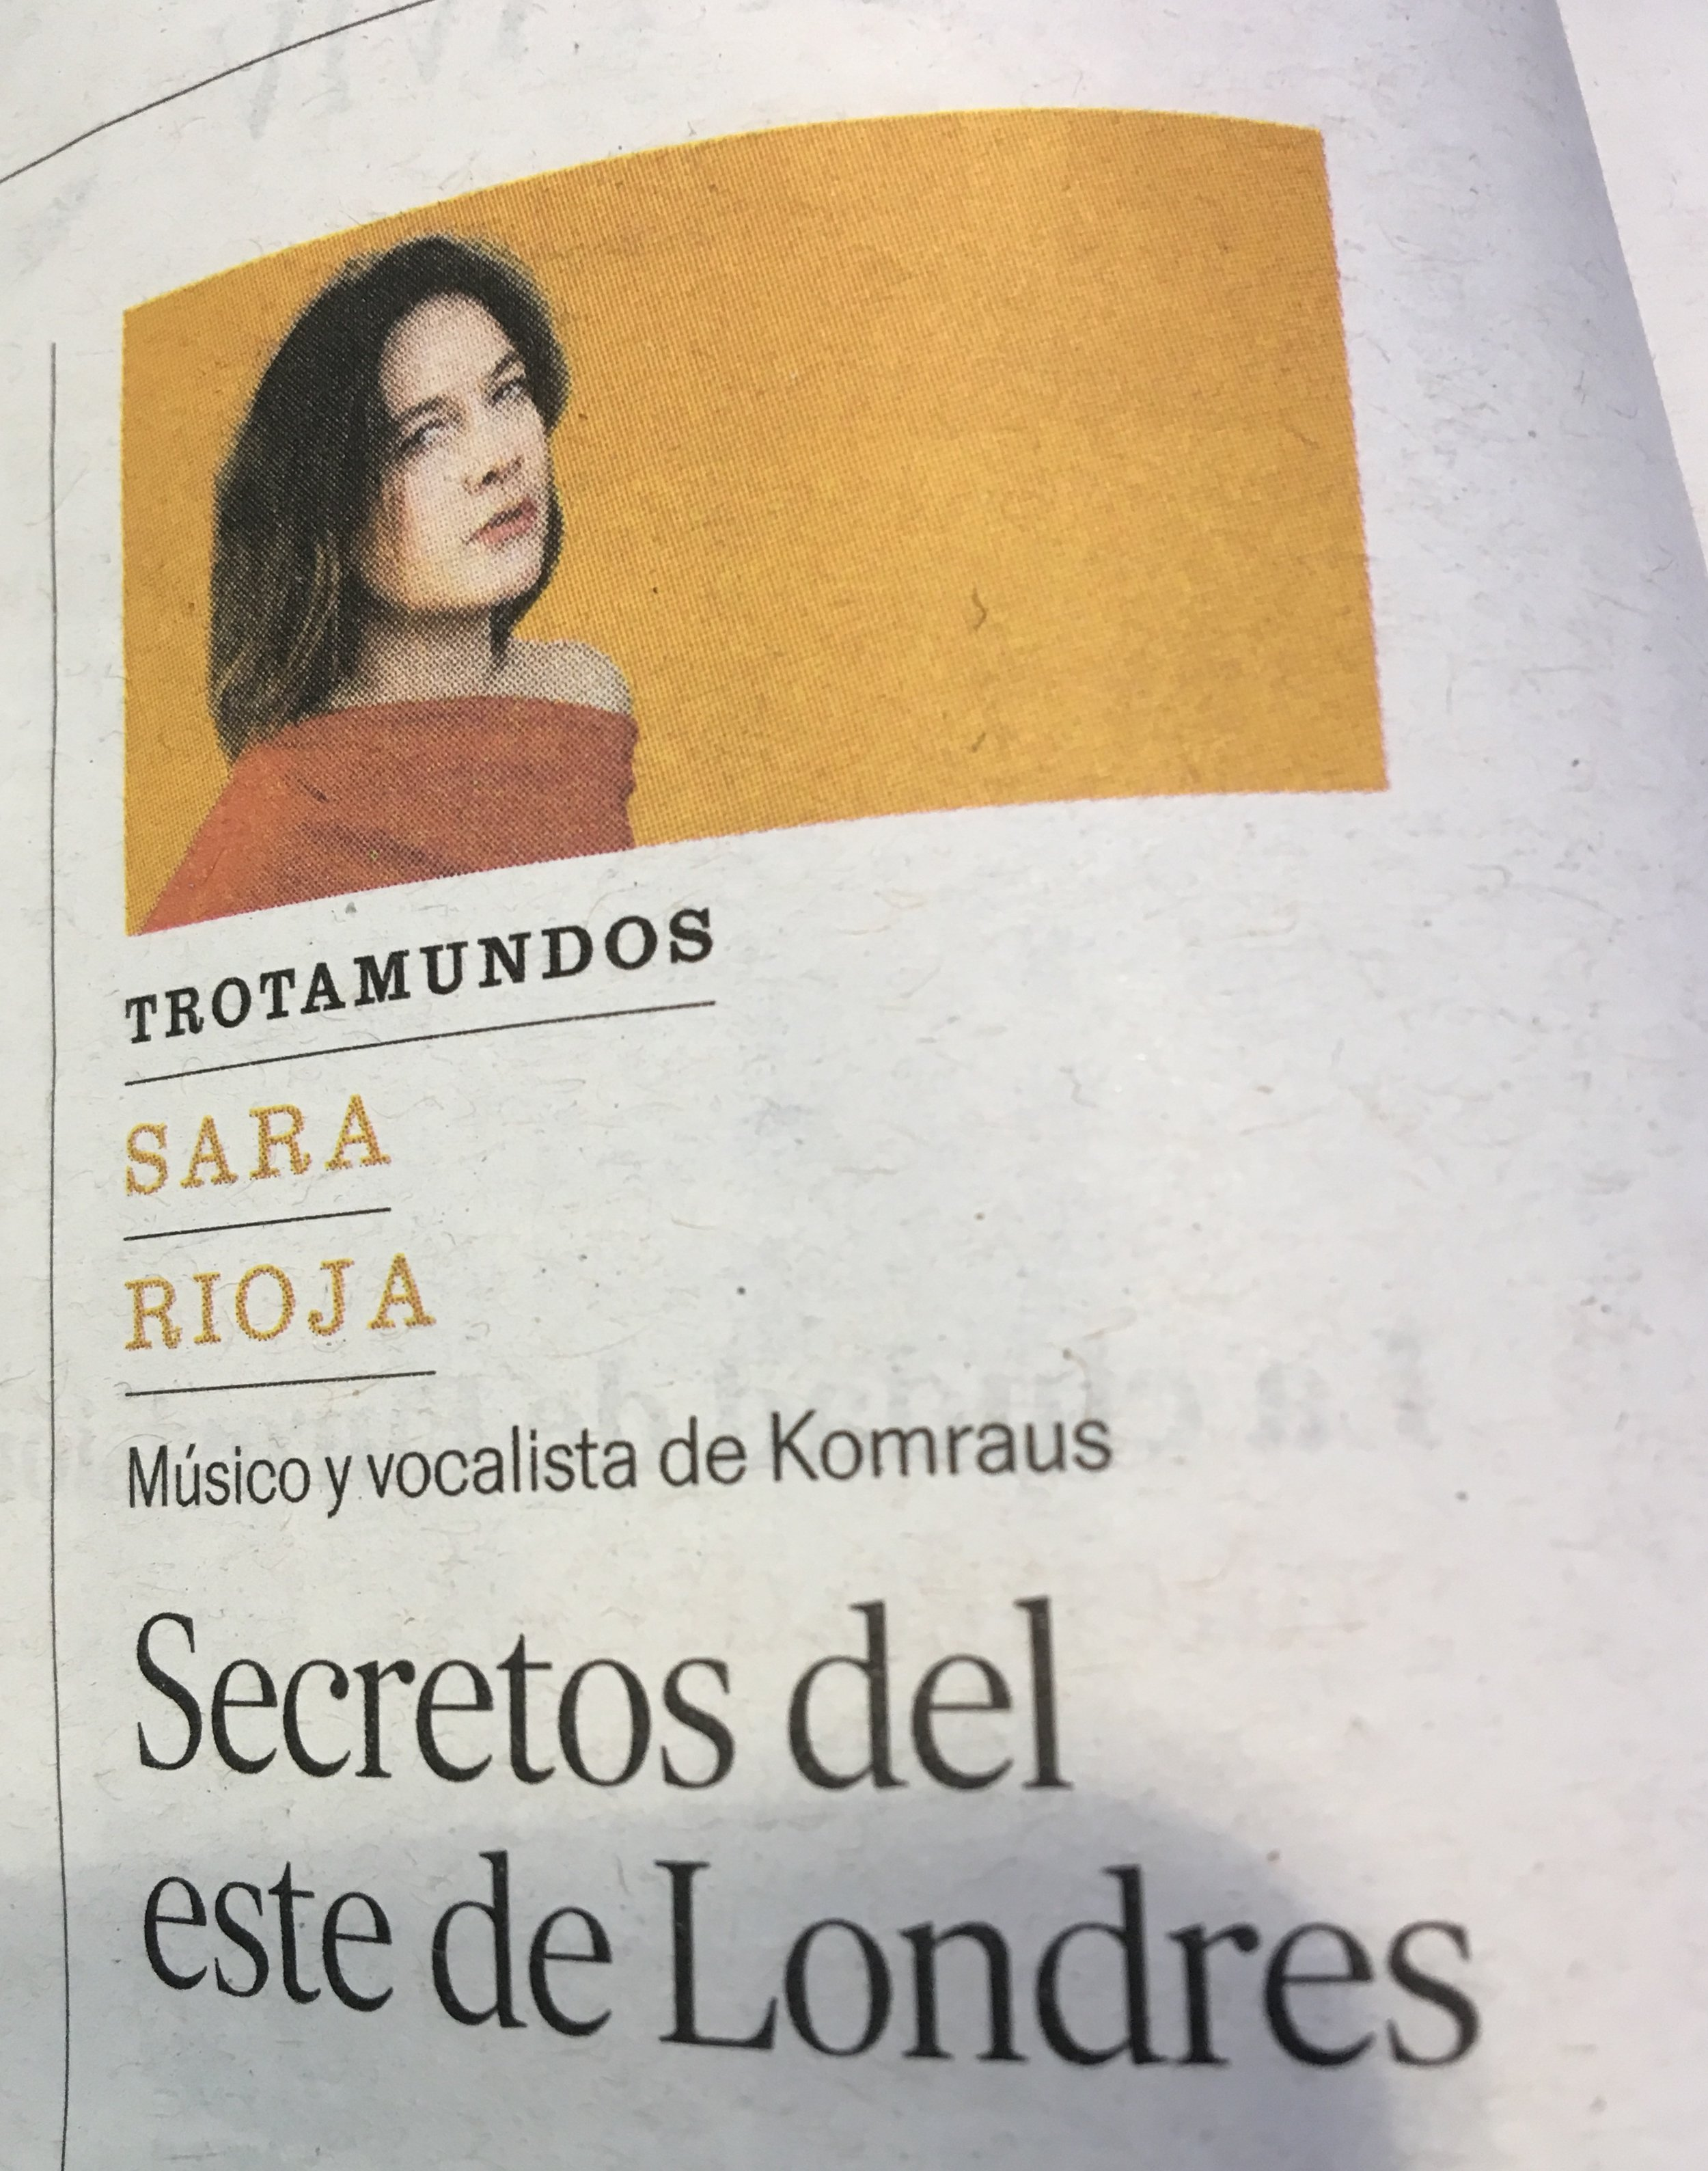 Interview. EL PAIS, National newspaper, SP - Interview to Sara Rioja, singer and composer, on paper and digital